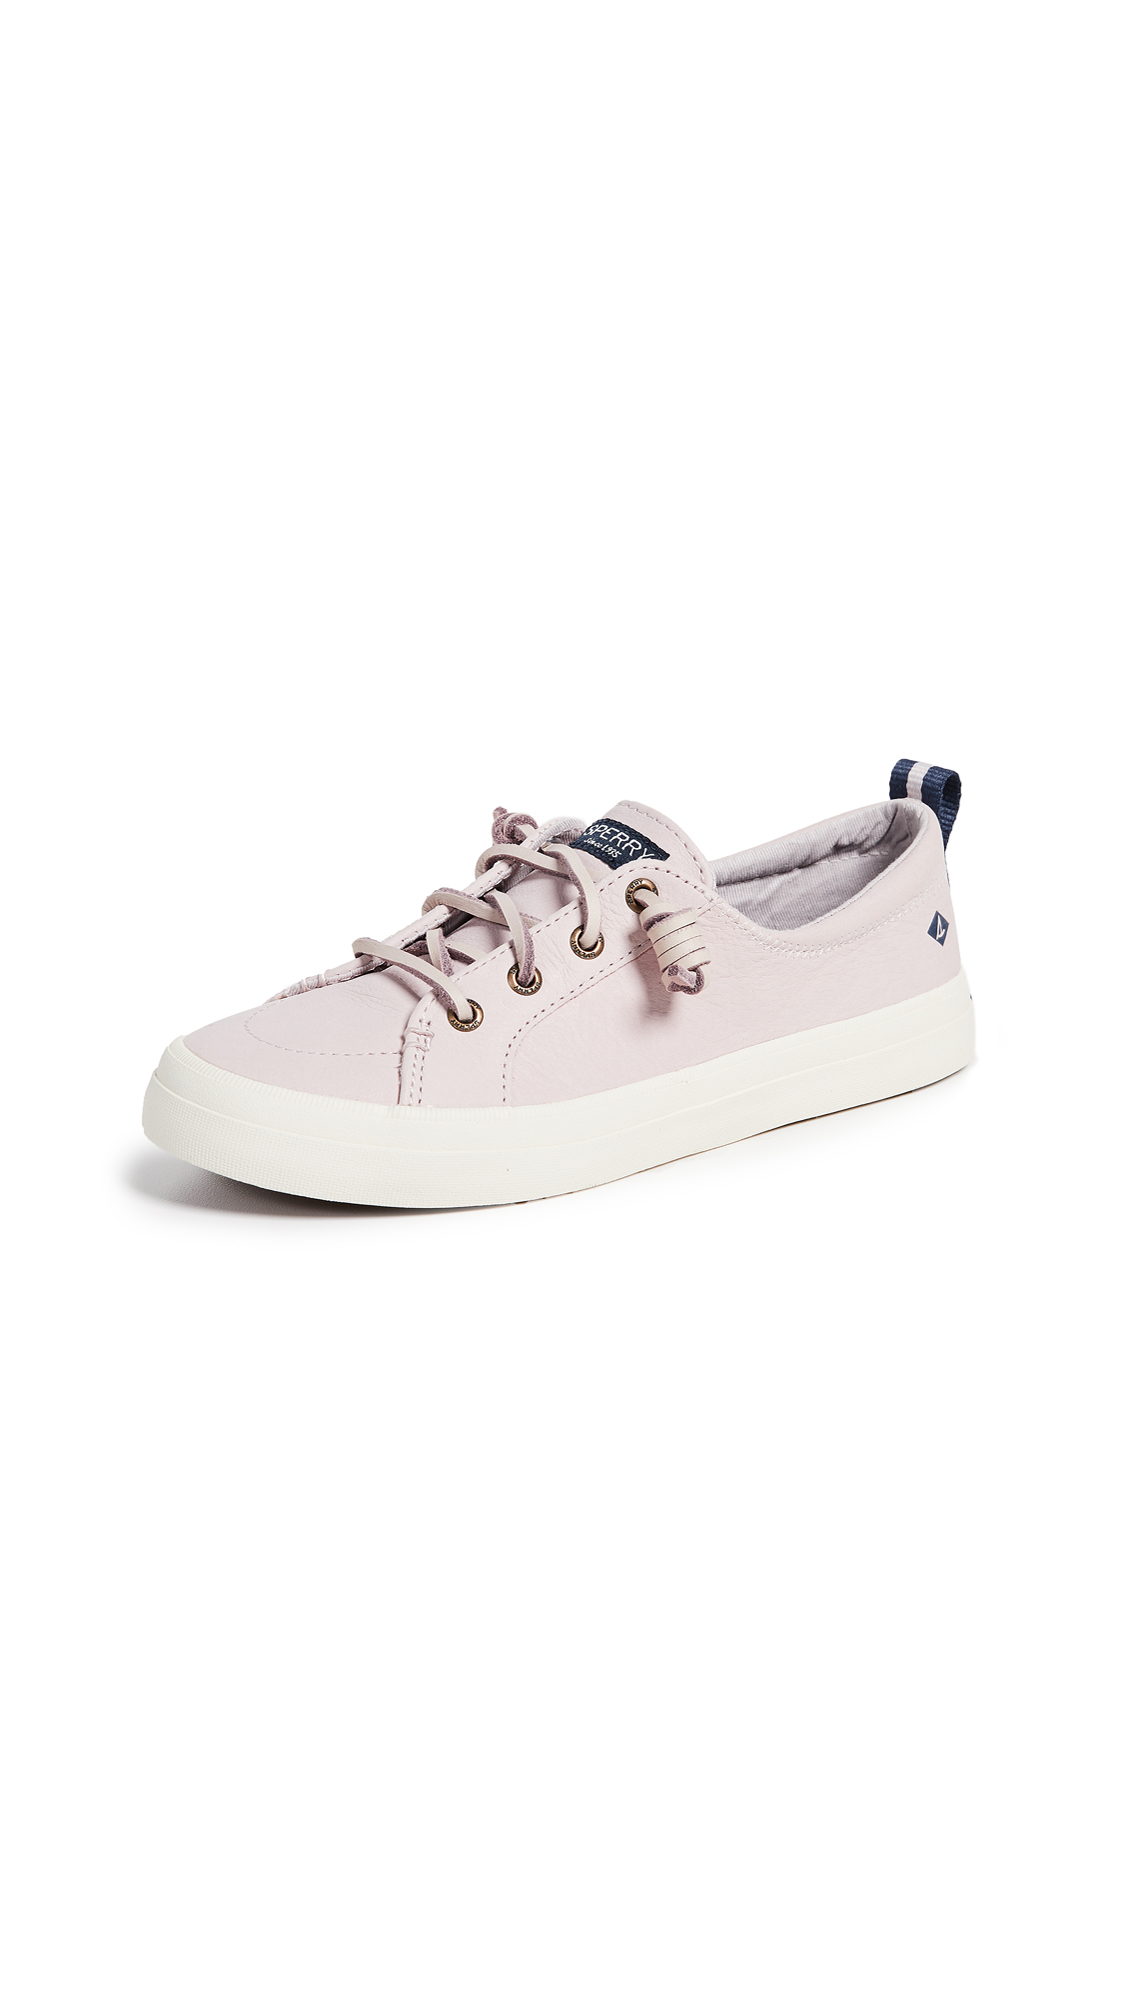 Sperry Crest Vibe Washable Leather Sneakers - Rose Dust